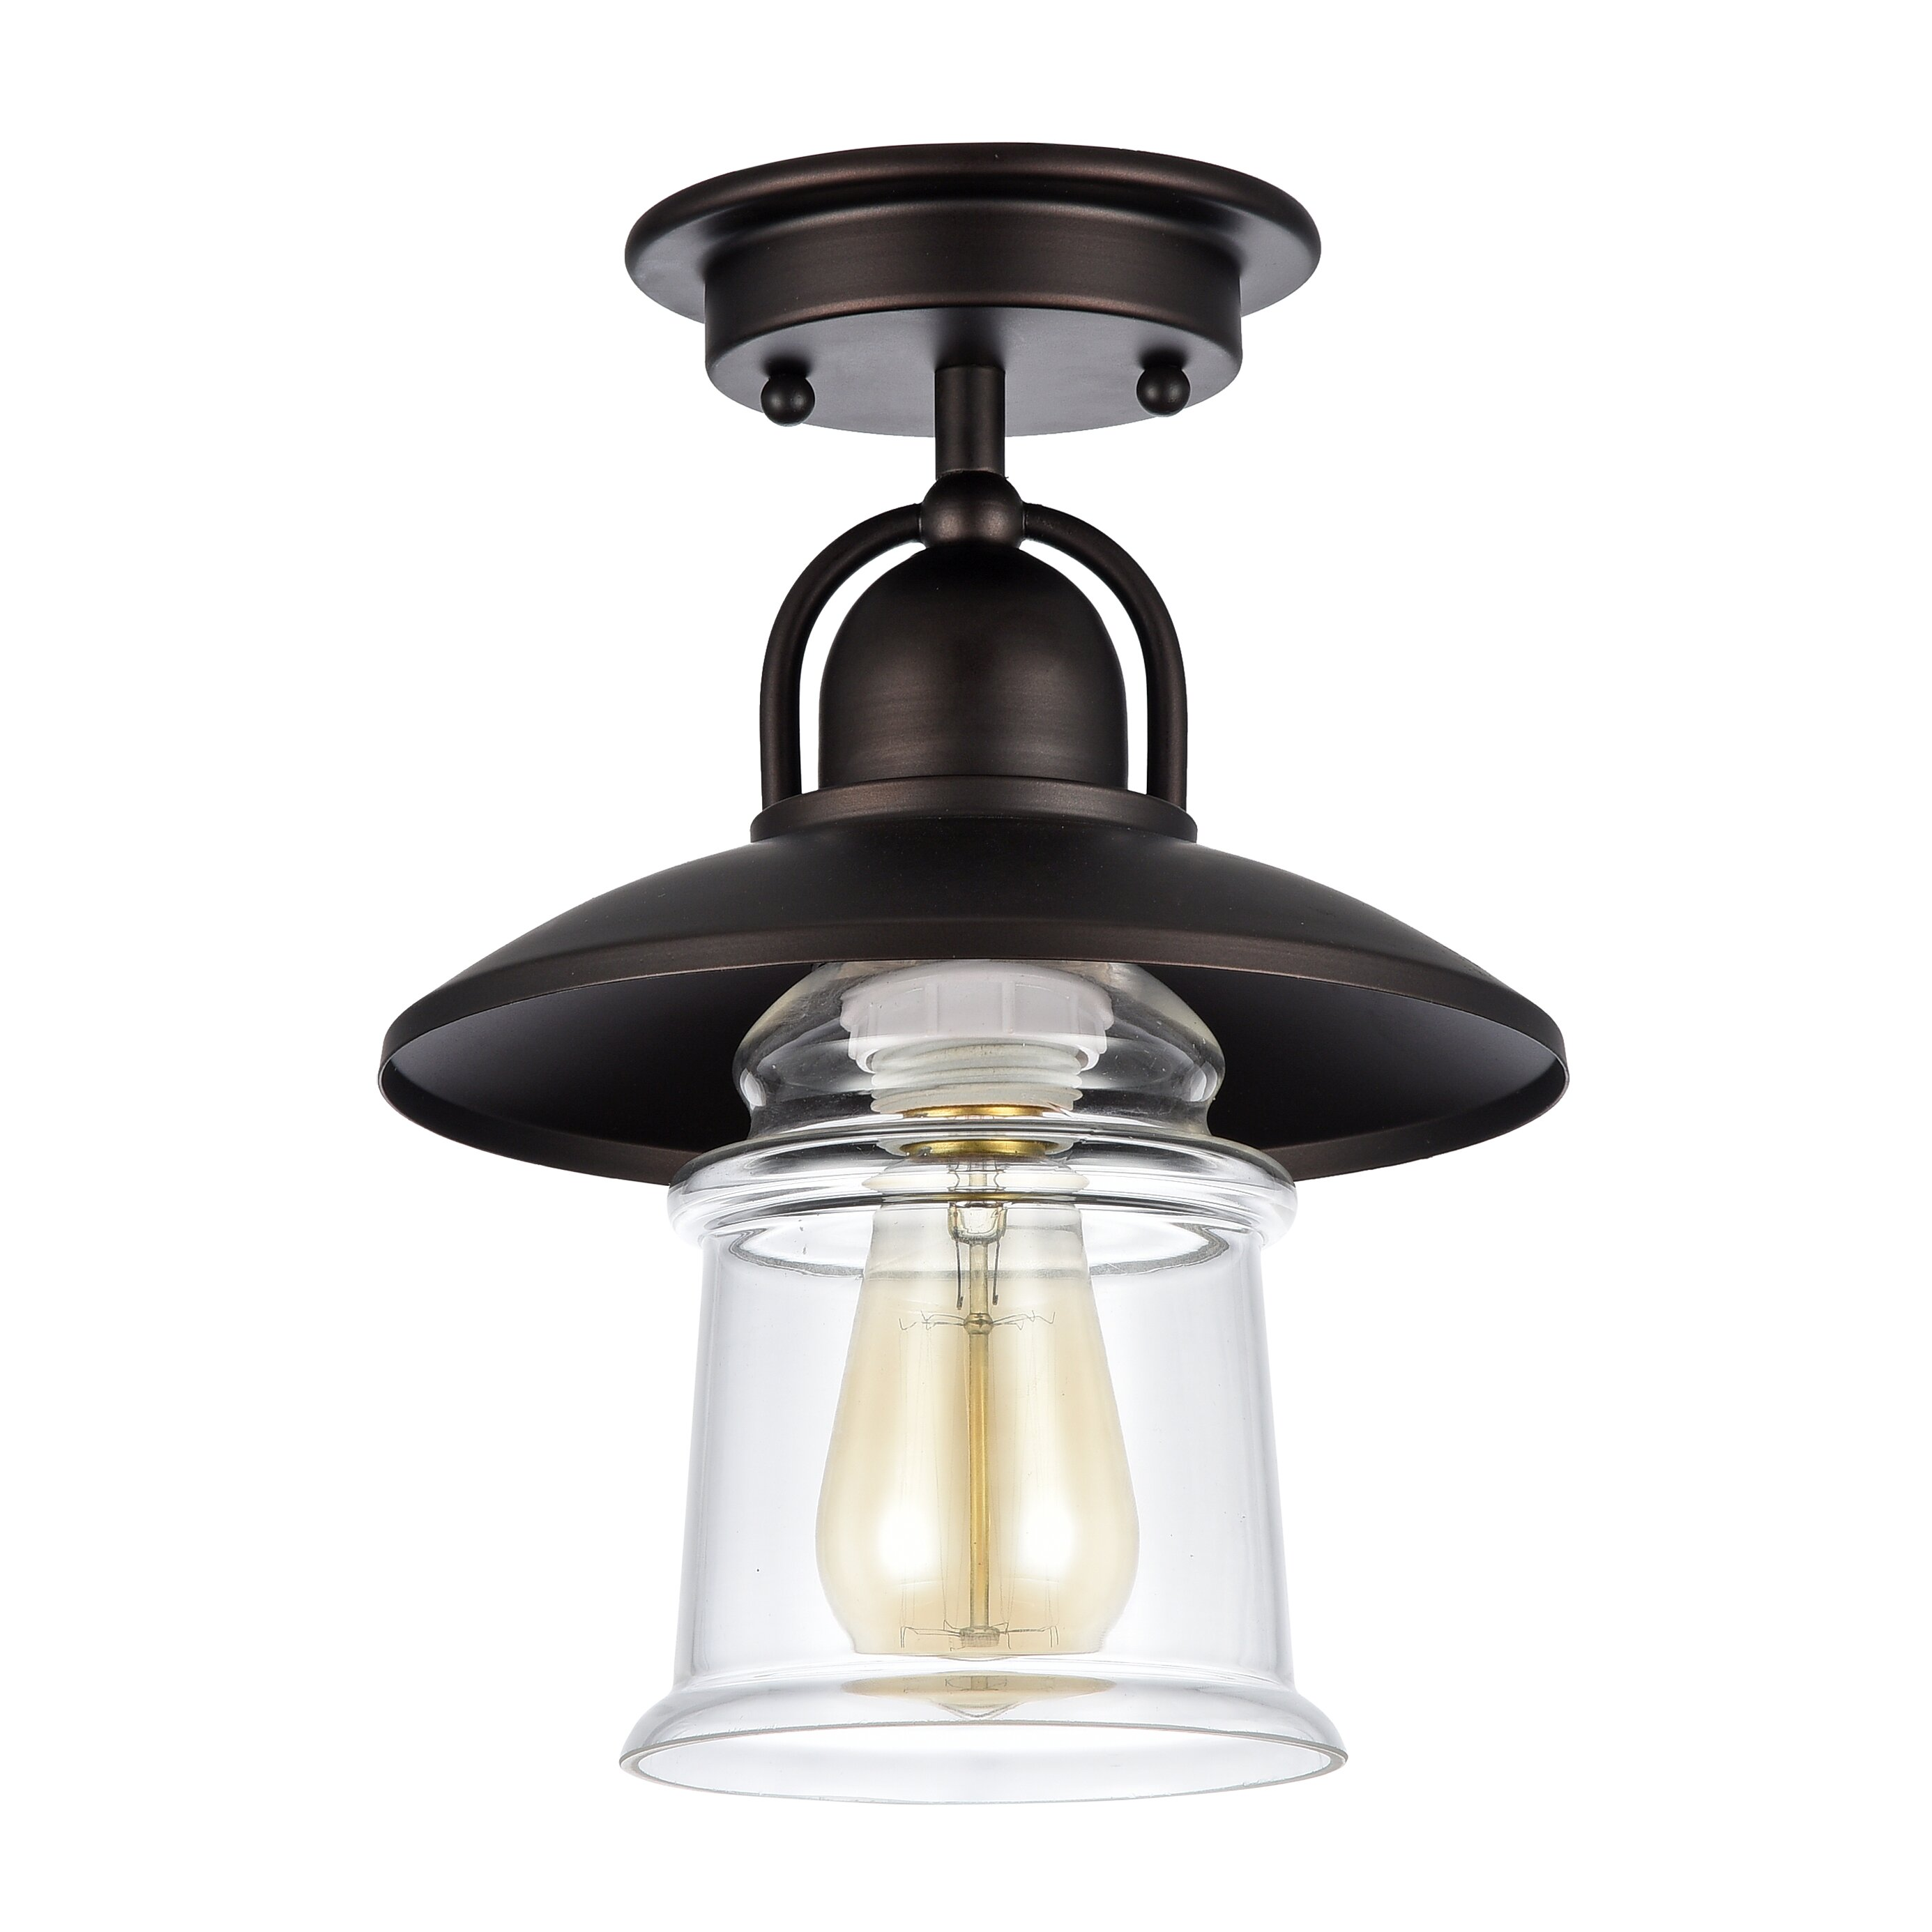 Laurel foundry modern farmhouse bouvet 1 light semi flush for Semi flush mount lighting modern